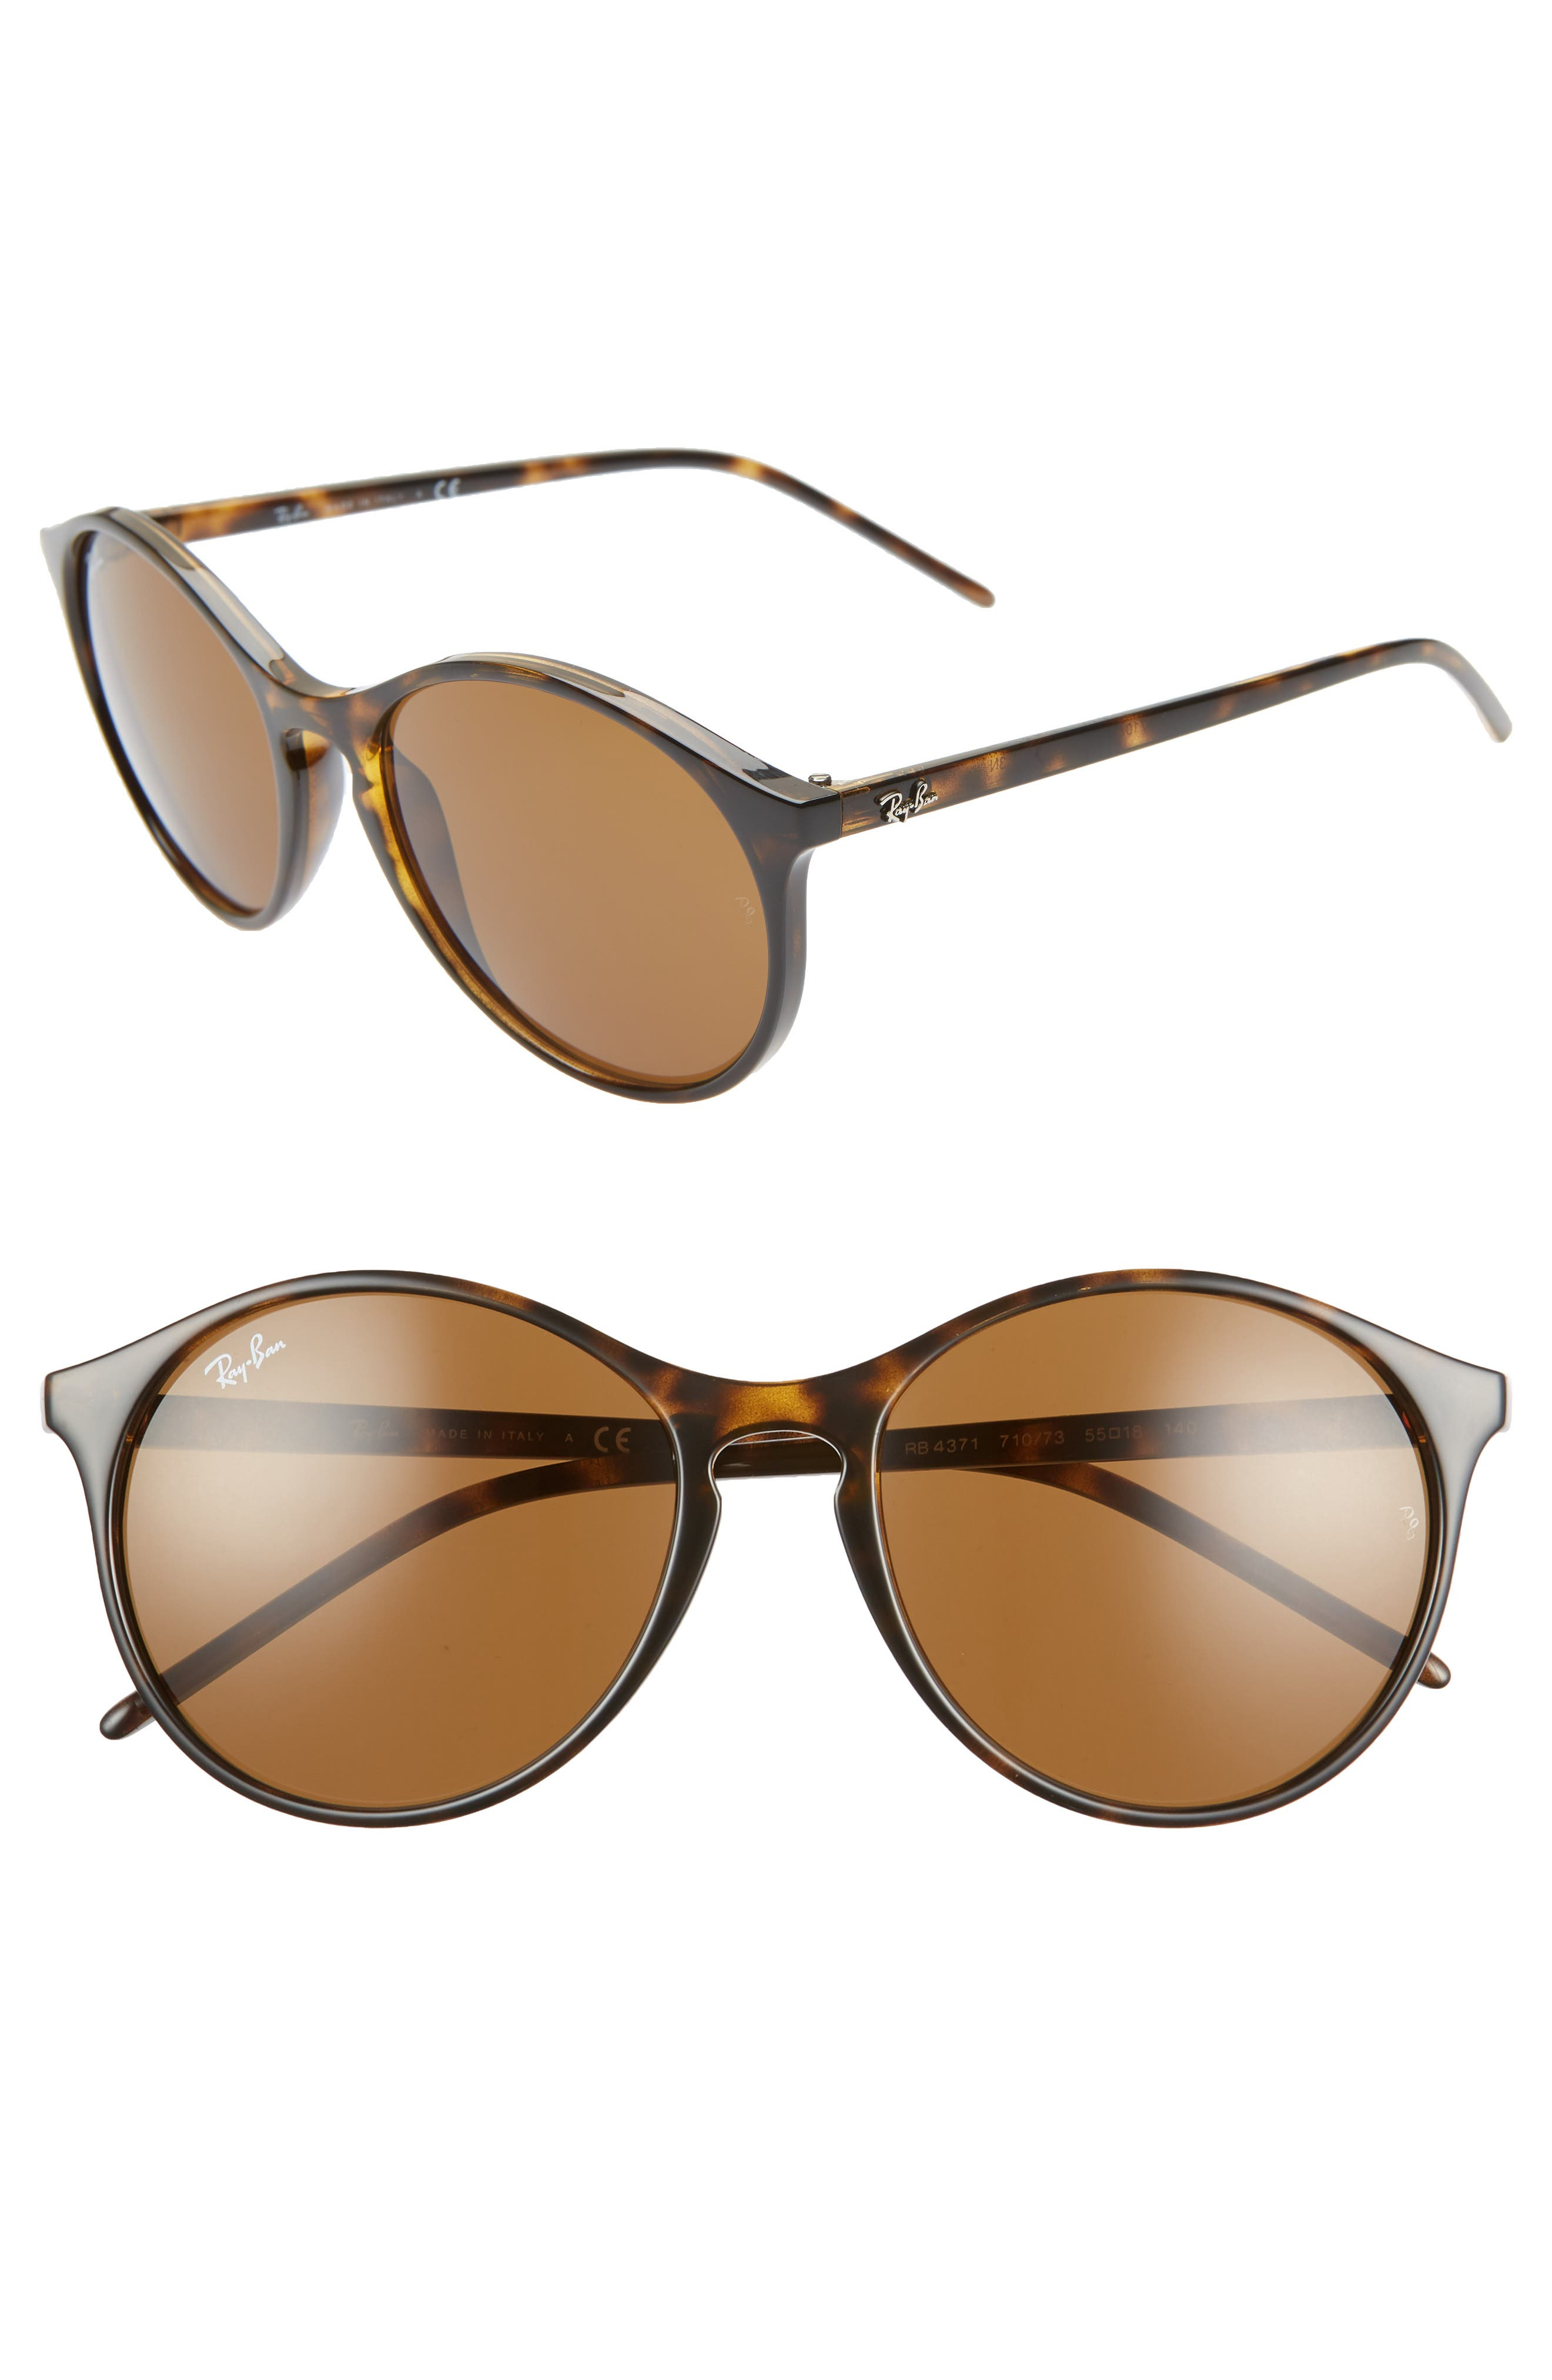 f9a59be164256 Ray Ban Rb4147 Sunglasses Brown Frame Crystal Deep Brown Gradien